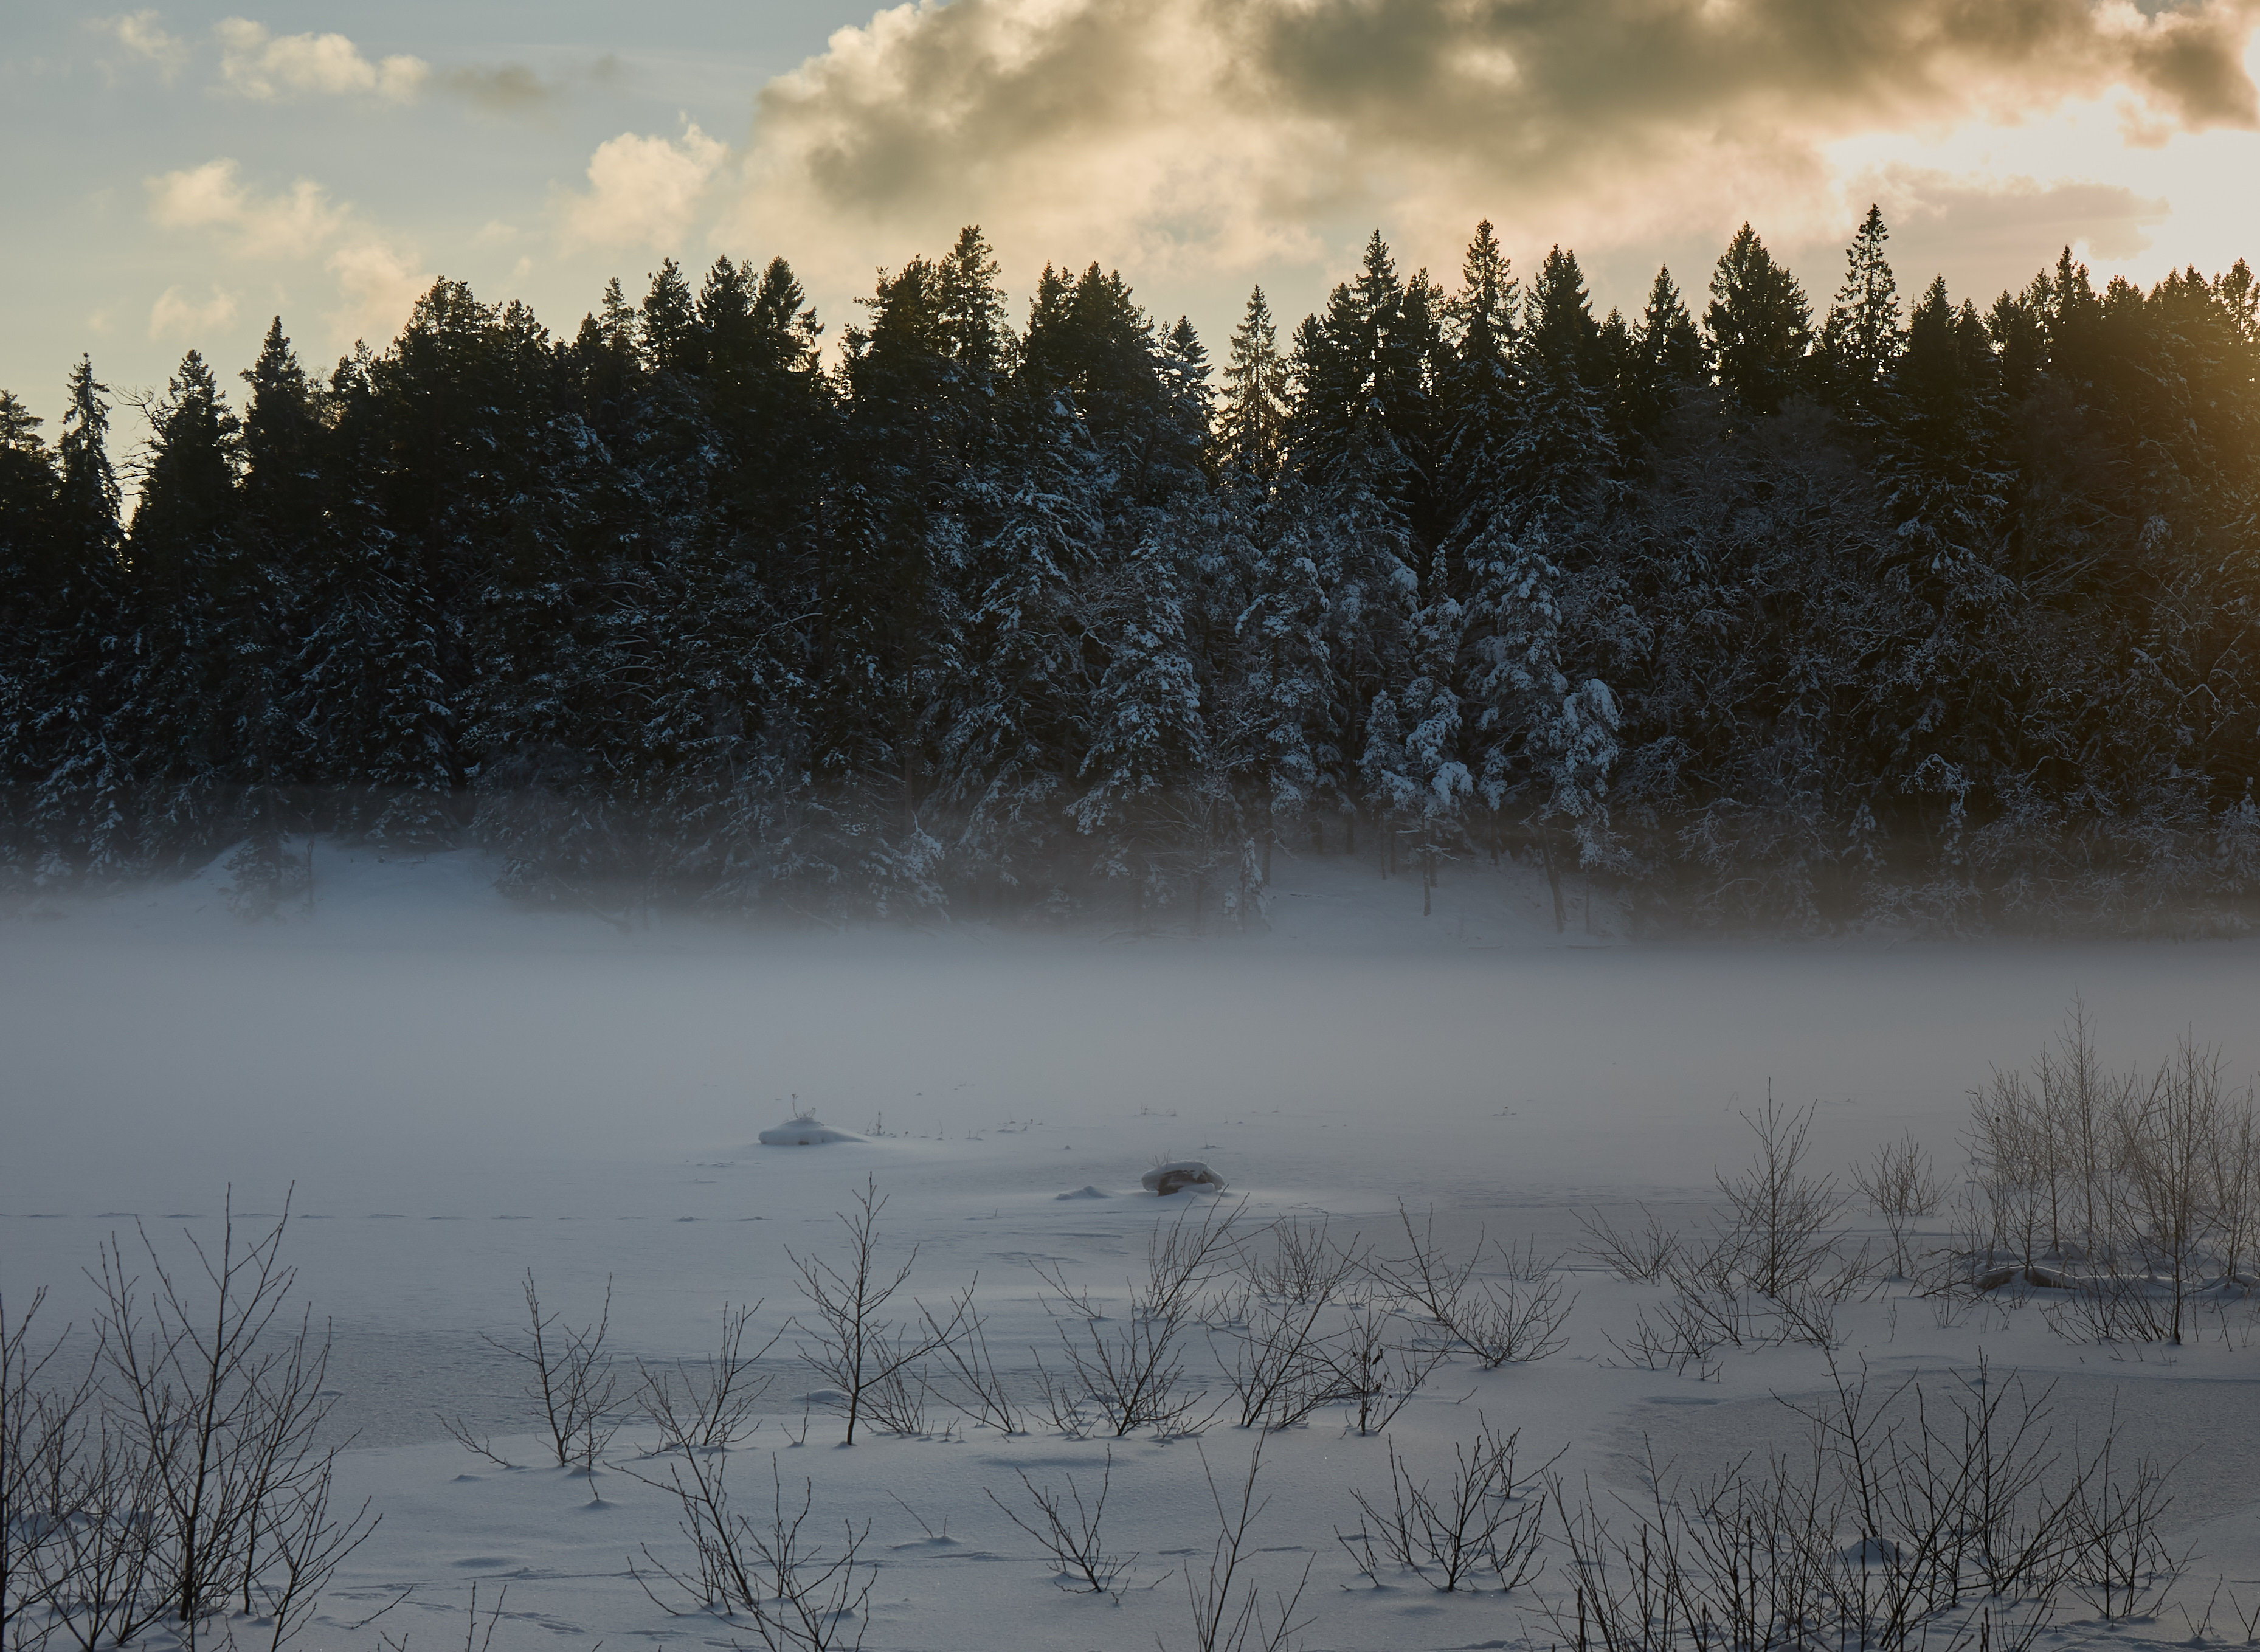 85414 download wallpaper Trees, Snow, Winter, Nature, Fir-Trees screensavers and pictures for free